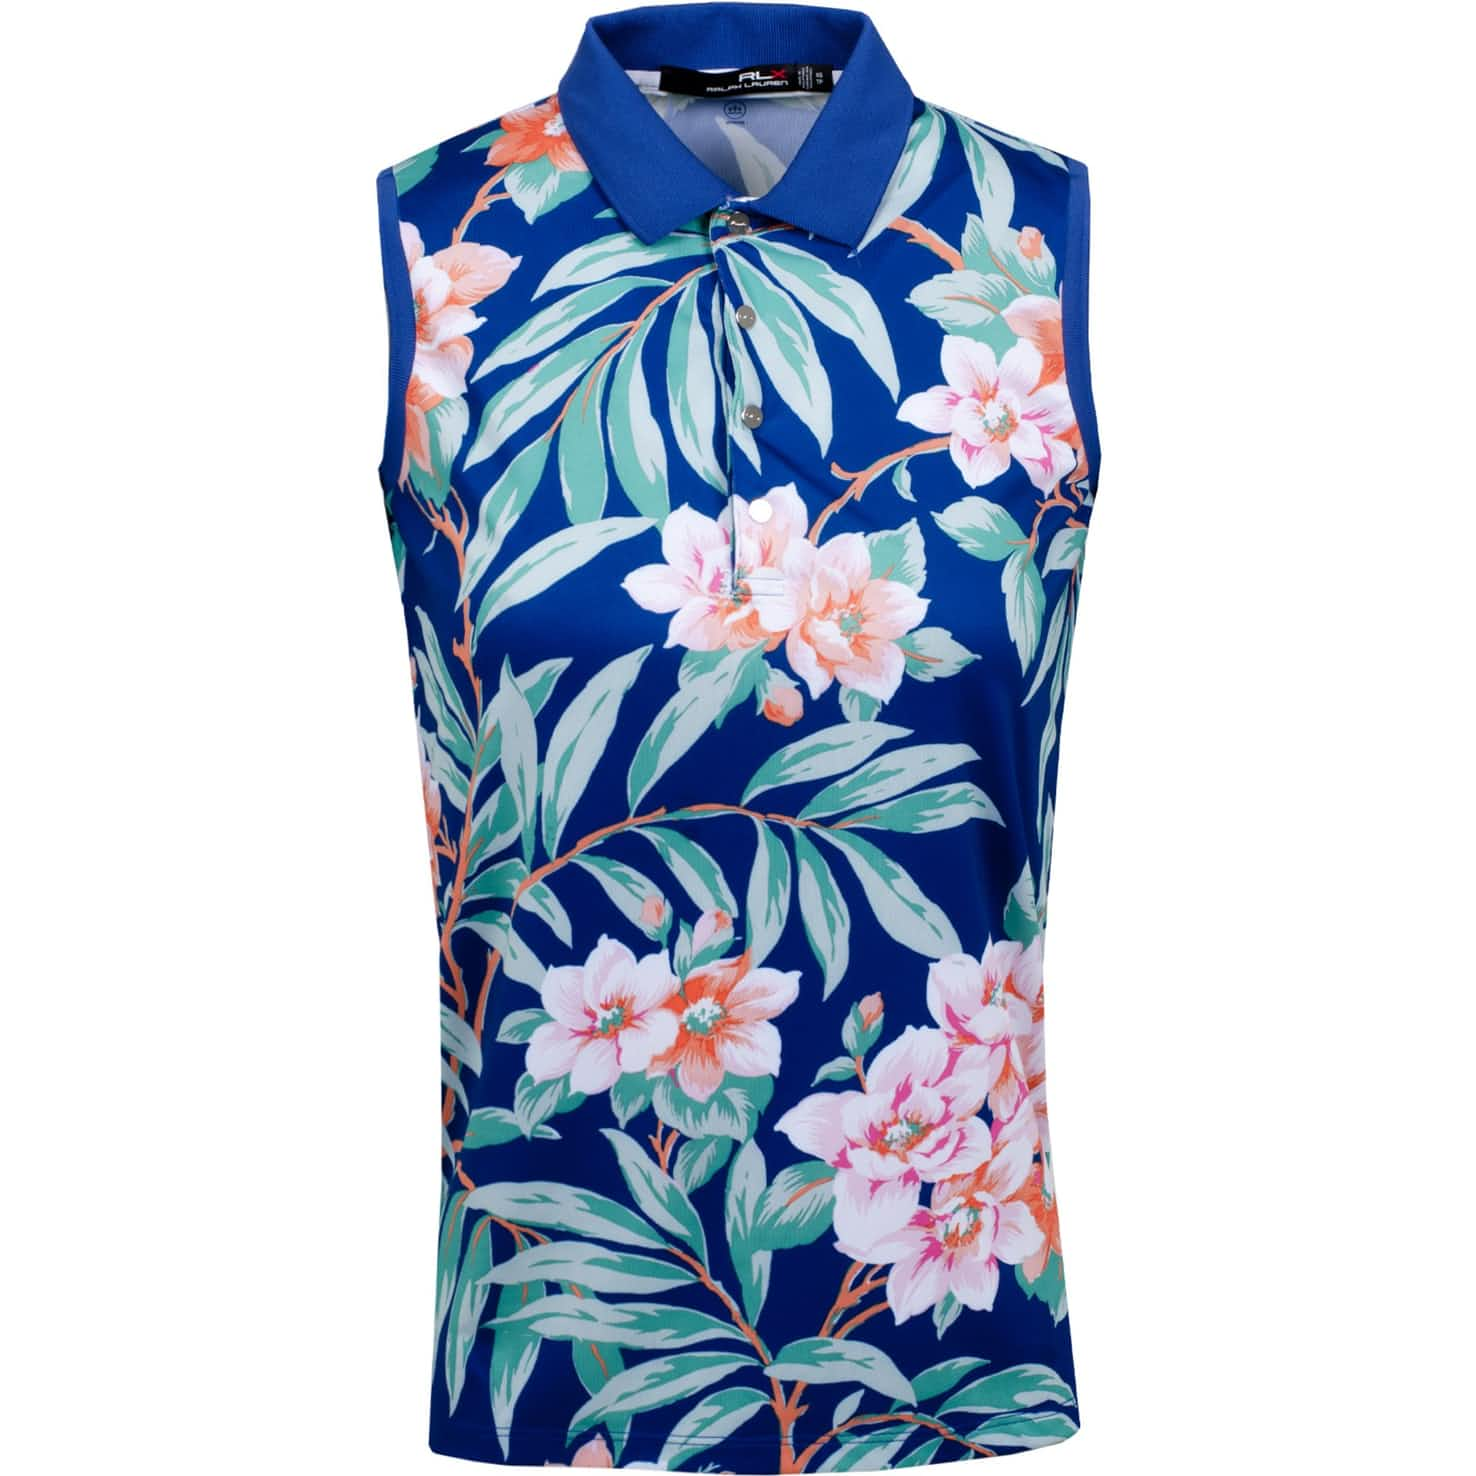 Womens Printed Sleeveless Polo Island Floral - SS20